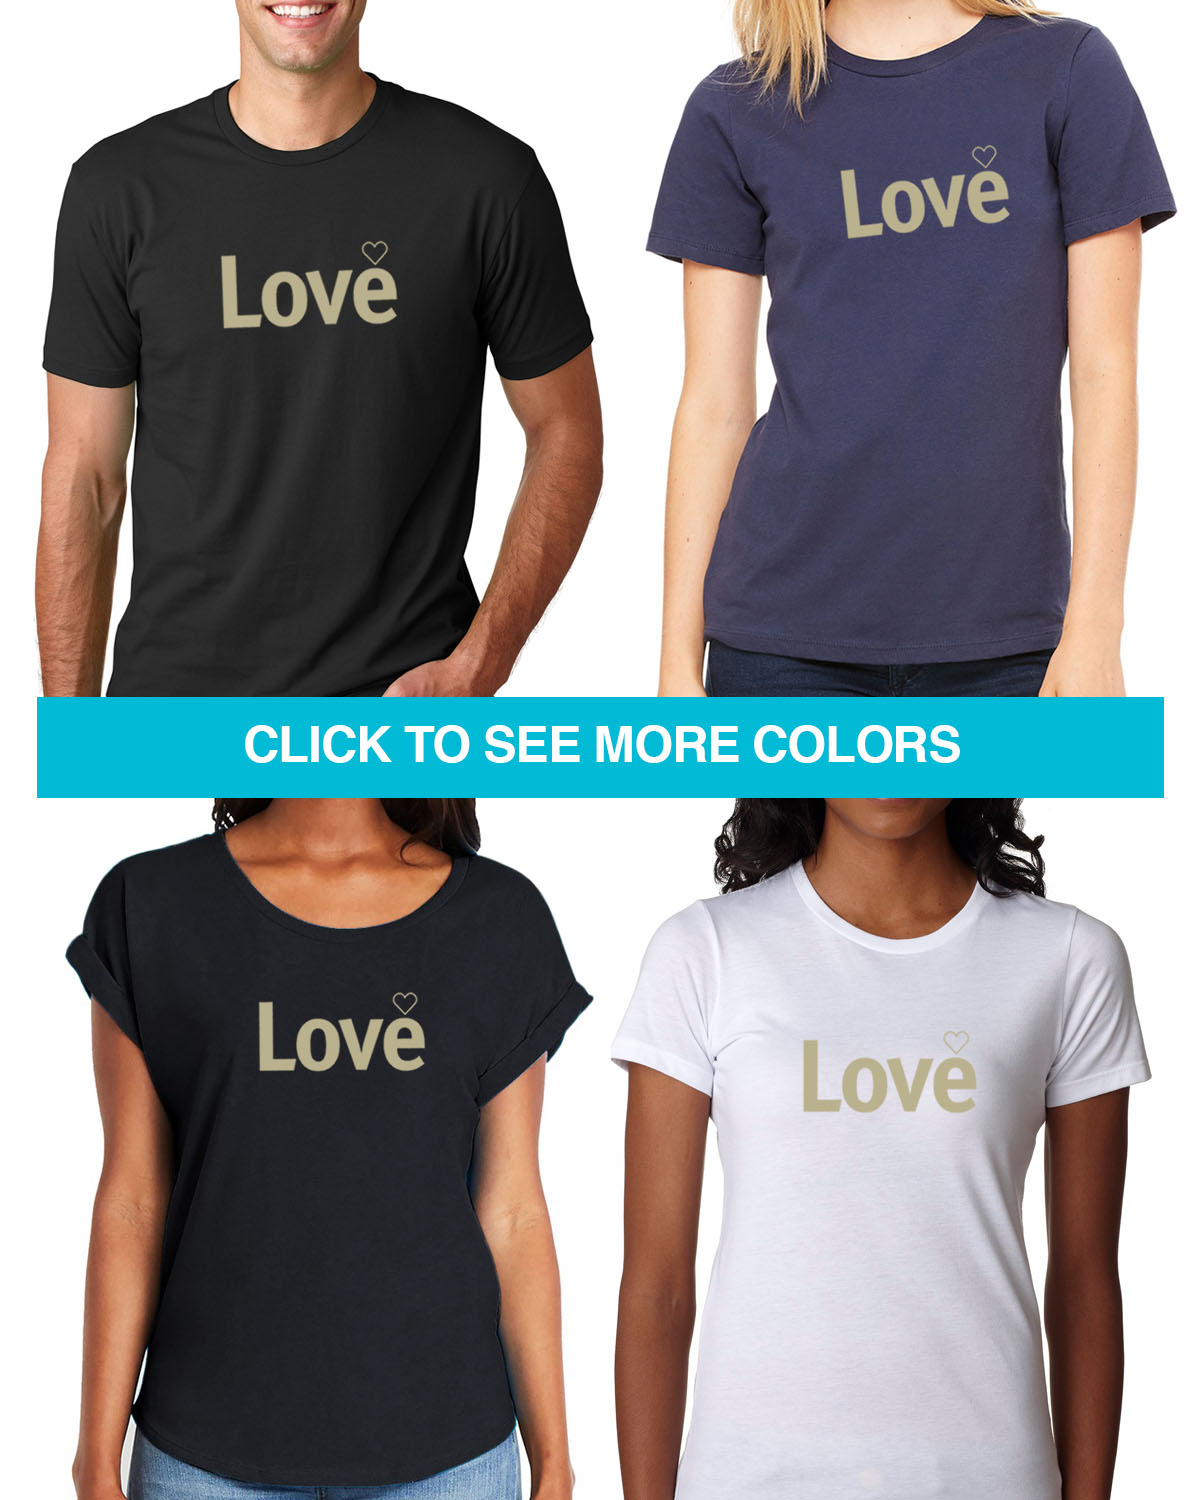 Inspiring word -Love T-shirt for men and women